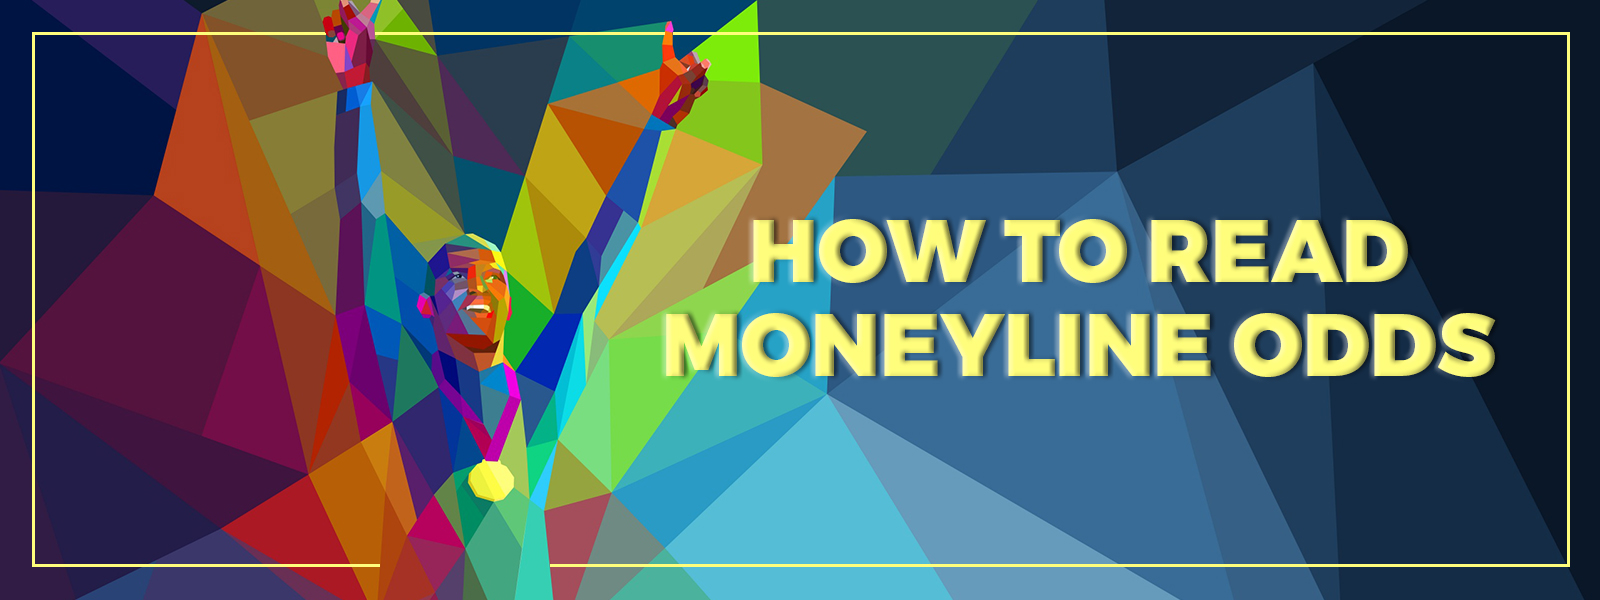 How To Read Moneyline Odds